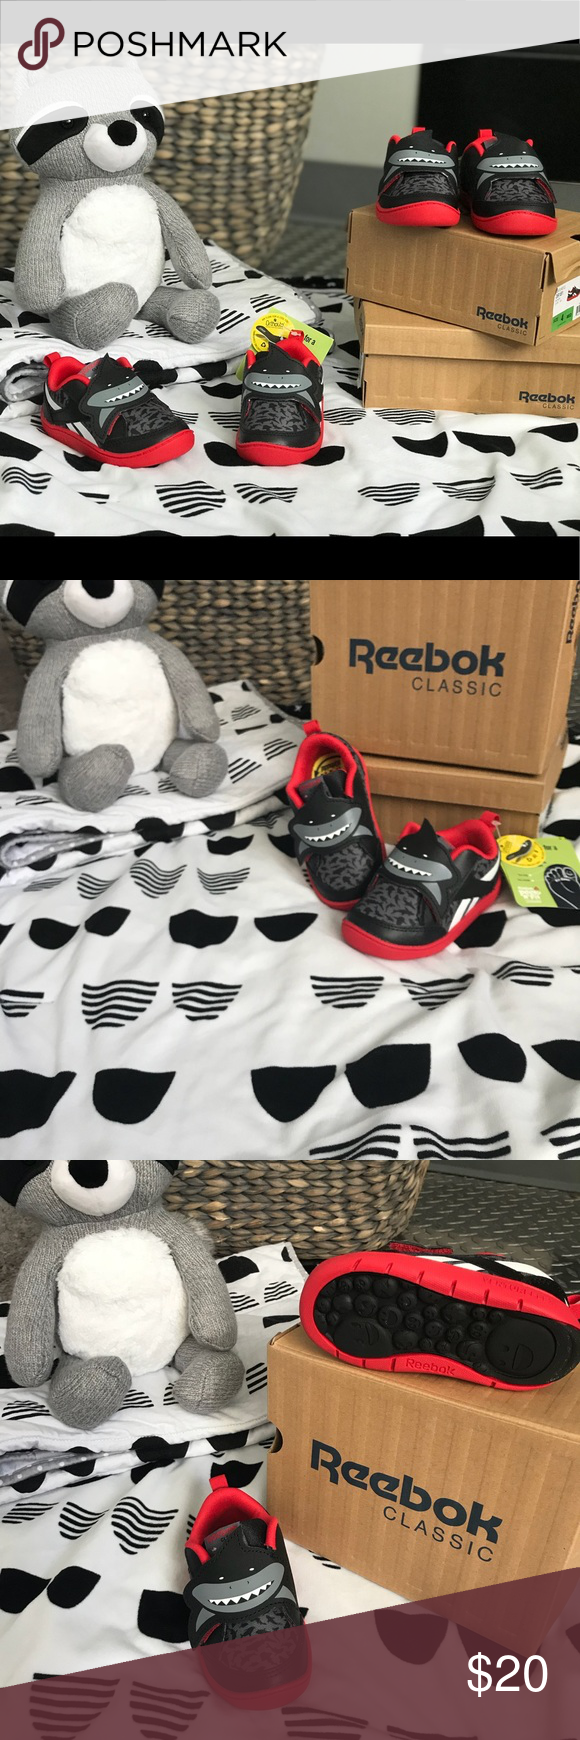 REEBOK CLASSIC INFANT SHOES SIZE 4 Shark design walking shoe for infants  with ortholite insoles. 9e6a57954